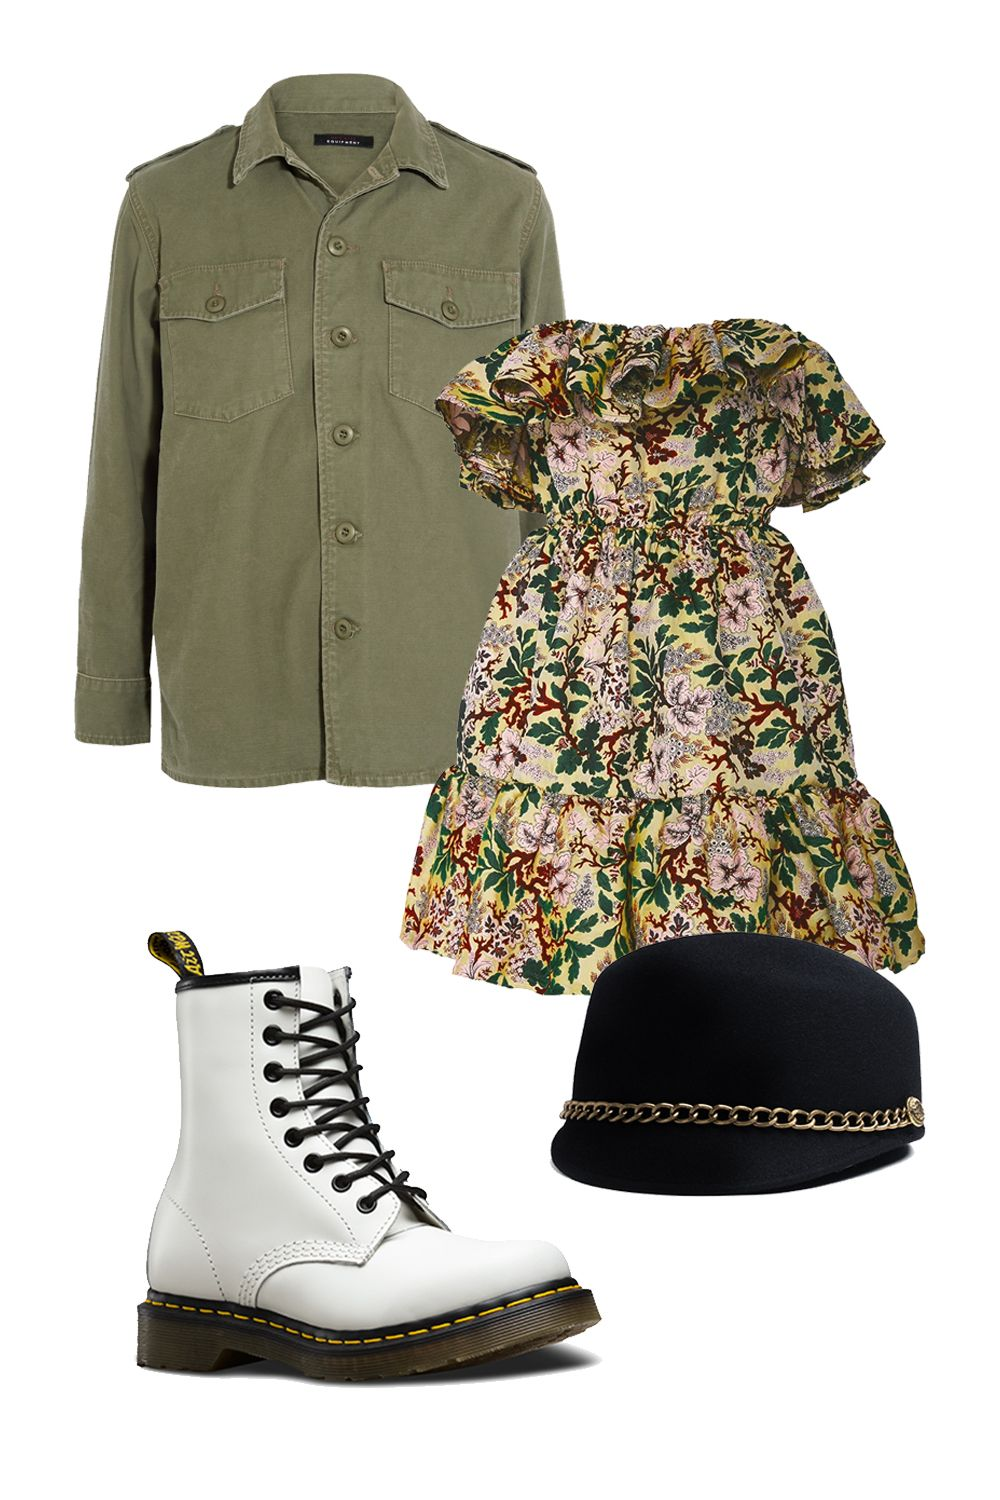 "<p>You're the zodiac's warrior queen, Aries, so work the military-inspired staples into your style. Toughen up a floral sundress with combat boots and try them in white or classic Aries red. Gladiator sandals can also be swapped in on warmer days. A broken-in army jacket doubles as an <i data-redactor-tag=""i"">apres-dusk</i> cover-up and a pillow when you need a quick catnap. P.S. Your fierceness may be called upon as you jump into an impromptu rap battle or flash your Feminist Fight Club credentials to put a festival bro in his place.</p><p><em data-redactor-tag=""em"" data-verified=""redactor"">Kate Moss for Equipment Major Washed Cotton-Canvas Jacket, $360; <a href=""https://www.net-a-porter.com/us/en/product/858563/kate_moss_for_equipment/major-washed-cotton-canvas-jacket"">net-a-porter.com</a> </em></p><p><em data-redactor-tag=""em"" data-verified=""redactor"">Philosophy Di Lorenzo Serafini Off-The-Shoulder Jacquard Ruffle Dress, $850; <a href=""https://www.modaoperandi.com/philosophy-di-lorenzo-serafini-r17/off-the-shoulder-jacquard-ruffle-dress#zoom"">modaoperandi.com</a> <br></em></p><p><em data-redactor-tag=""em"" data-verified=""redactor"">Dr Martens Women's 1460 Smooth, $135; <a href=""http://www.drmartens.com/us/p/11821100"">drmartens.com</a> </em></p><p><em data-redactor-tag=""em"" data-verified=""redactor"">Preston and Olivia Cindy Hat, $210; <a href=""https://prestonandolivia.com/collections/fall-winter-hats/products/copy-of-betty-1"">prestonandolivia.com</a> </em></p>"